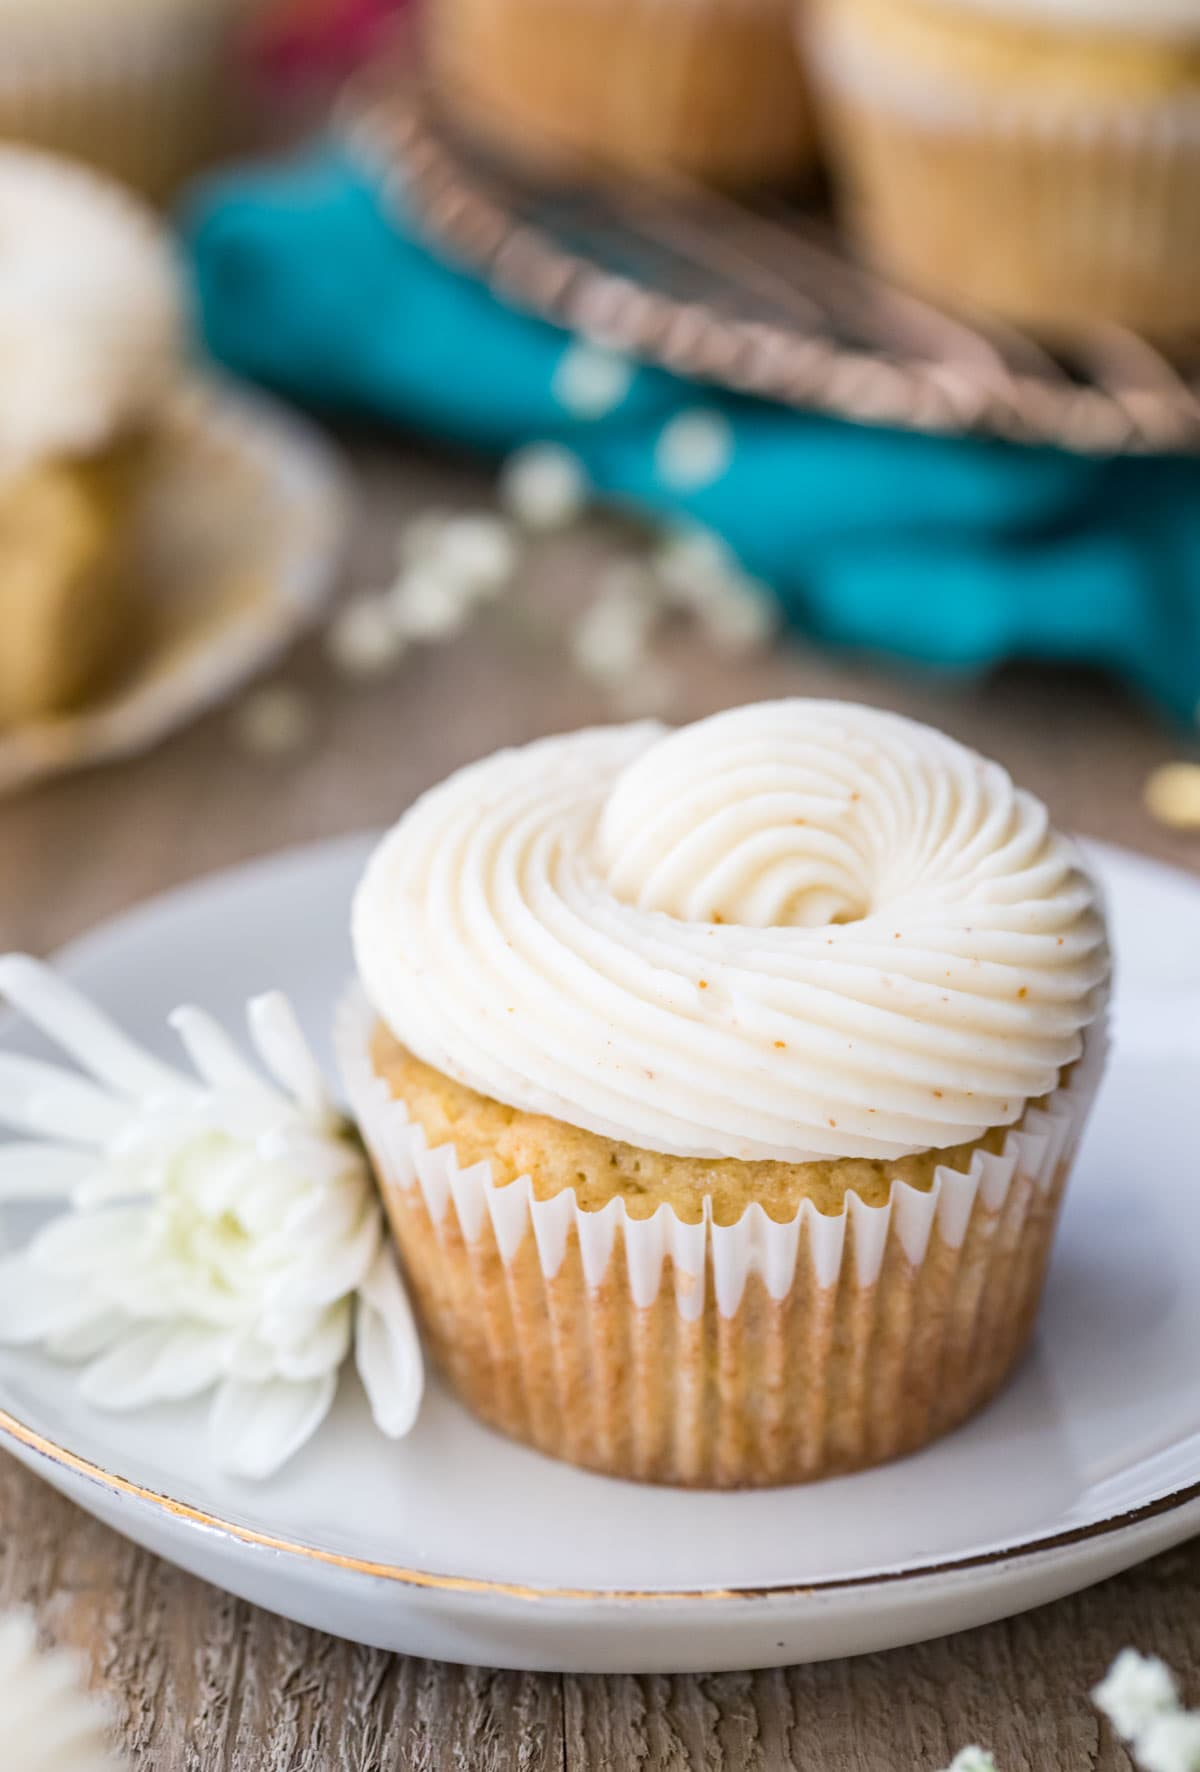 Banana cupcake on a white plate next to a white flower.